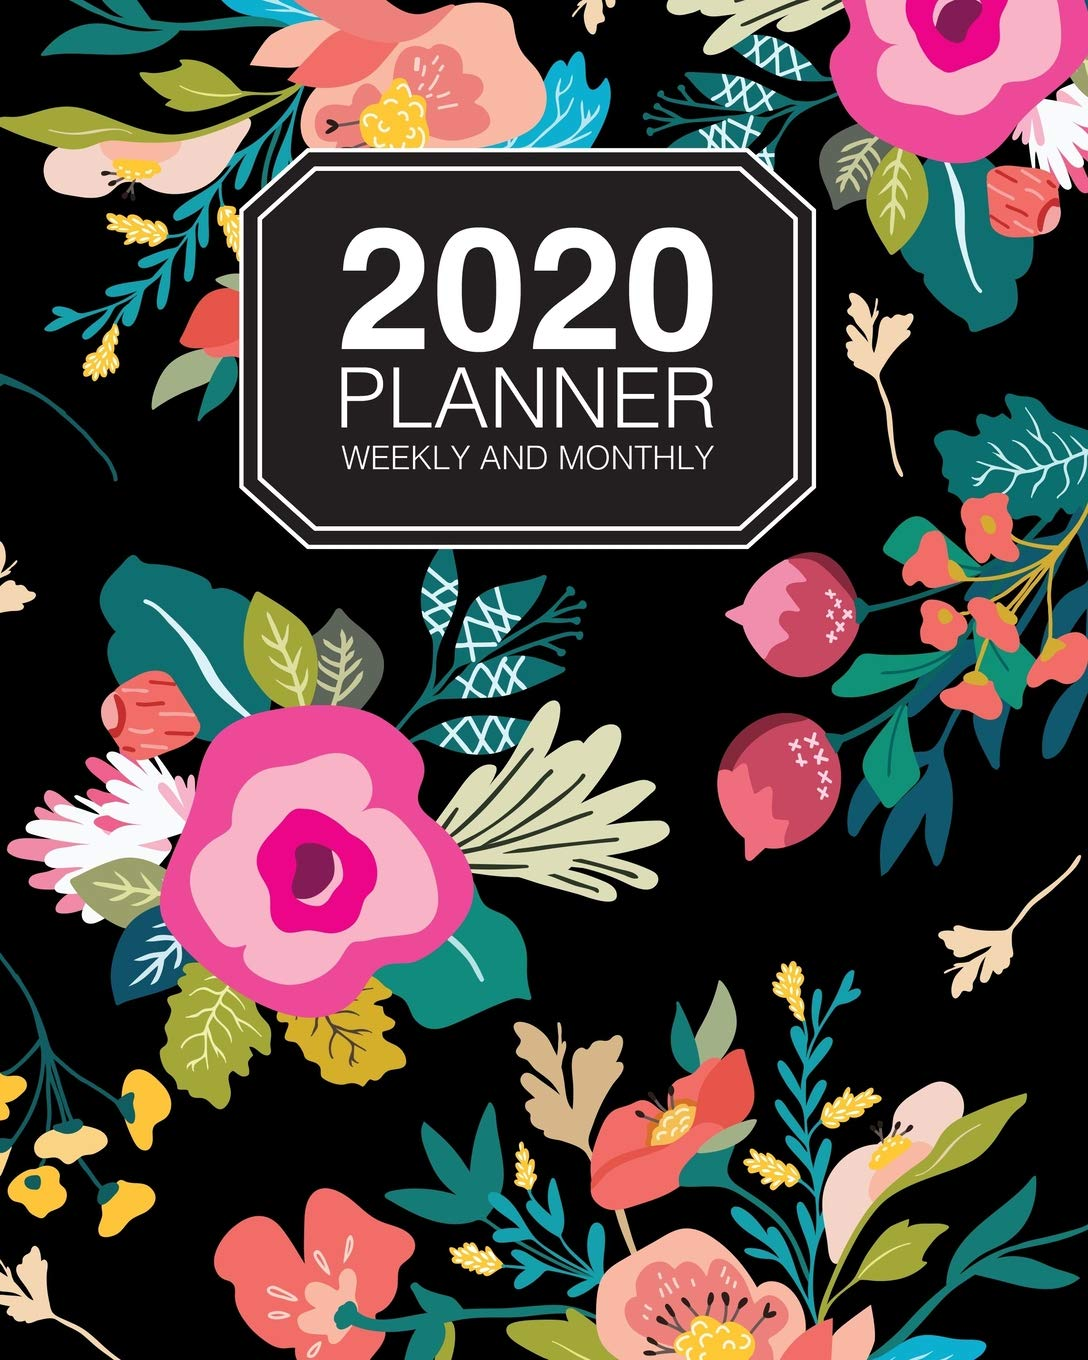 2020 Planner Weekly And Monthly: 12 Month Planner 2020 Chic ...